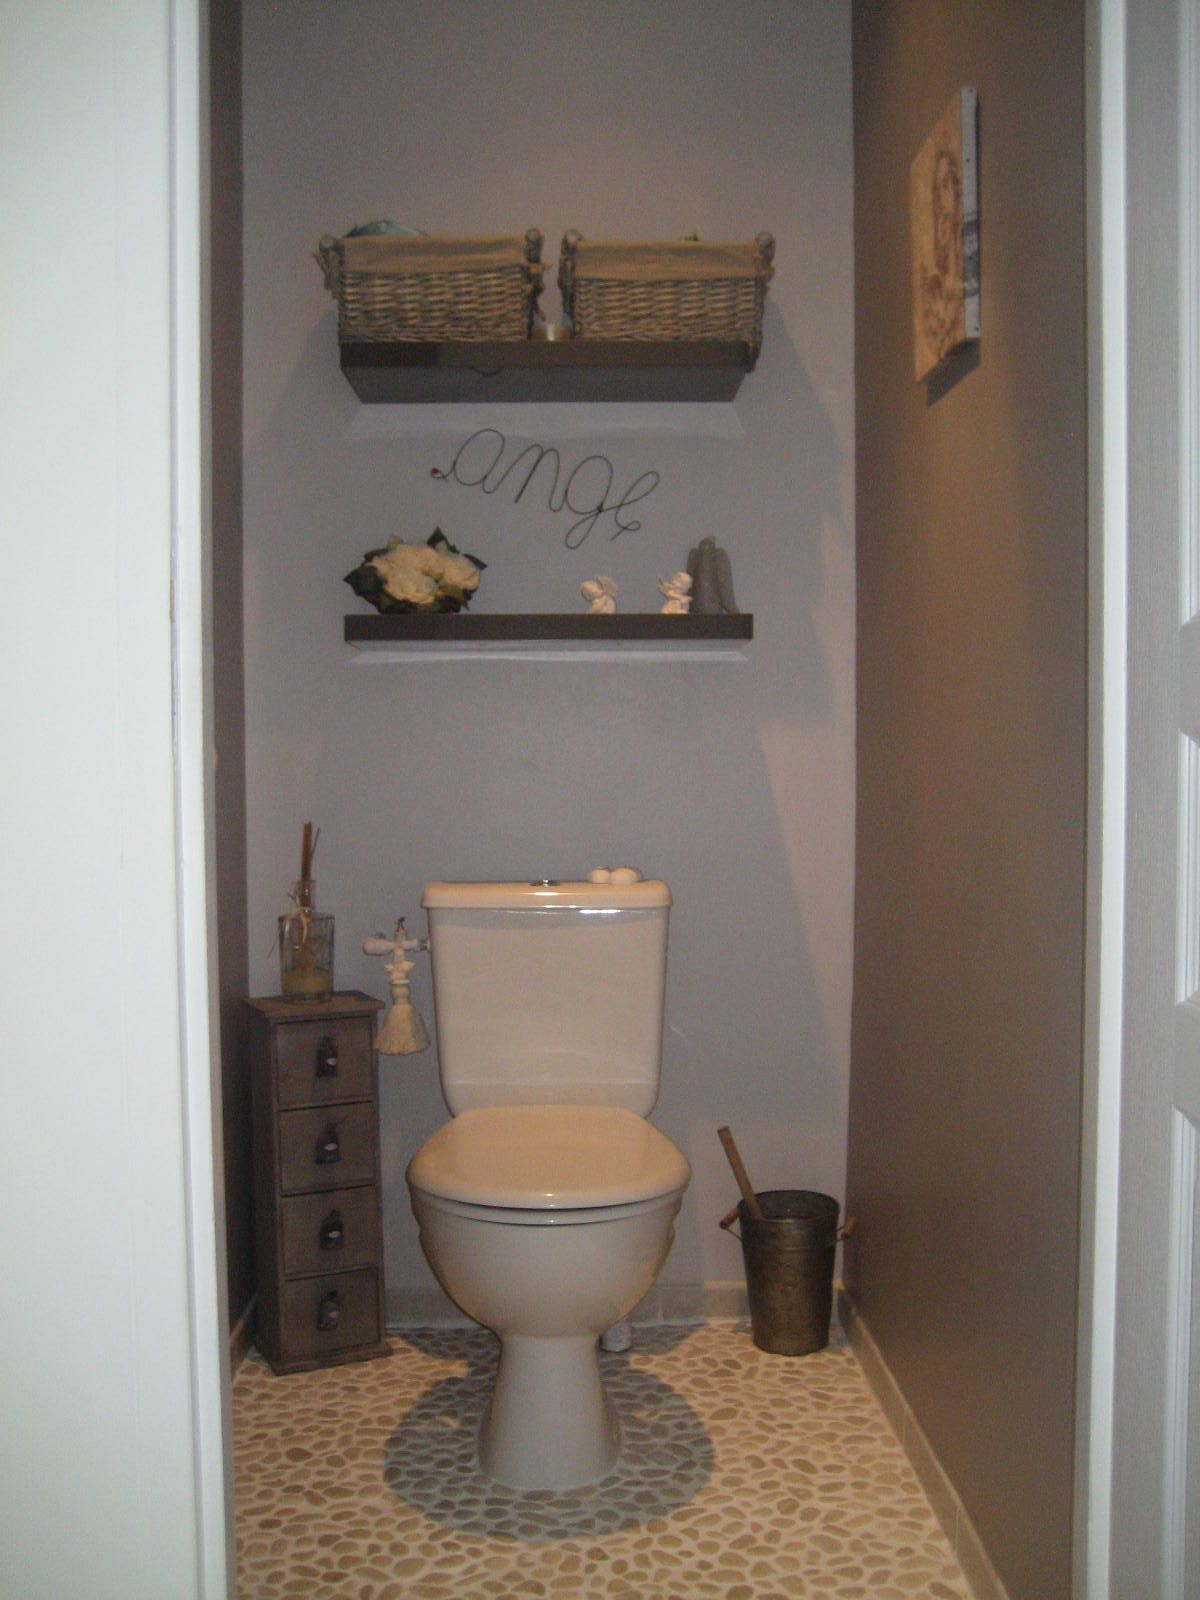 Toilette deco google search nouvelle maison pinterest d co toilettes - Idees deco toilettes photos ...